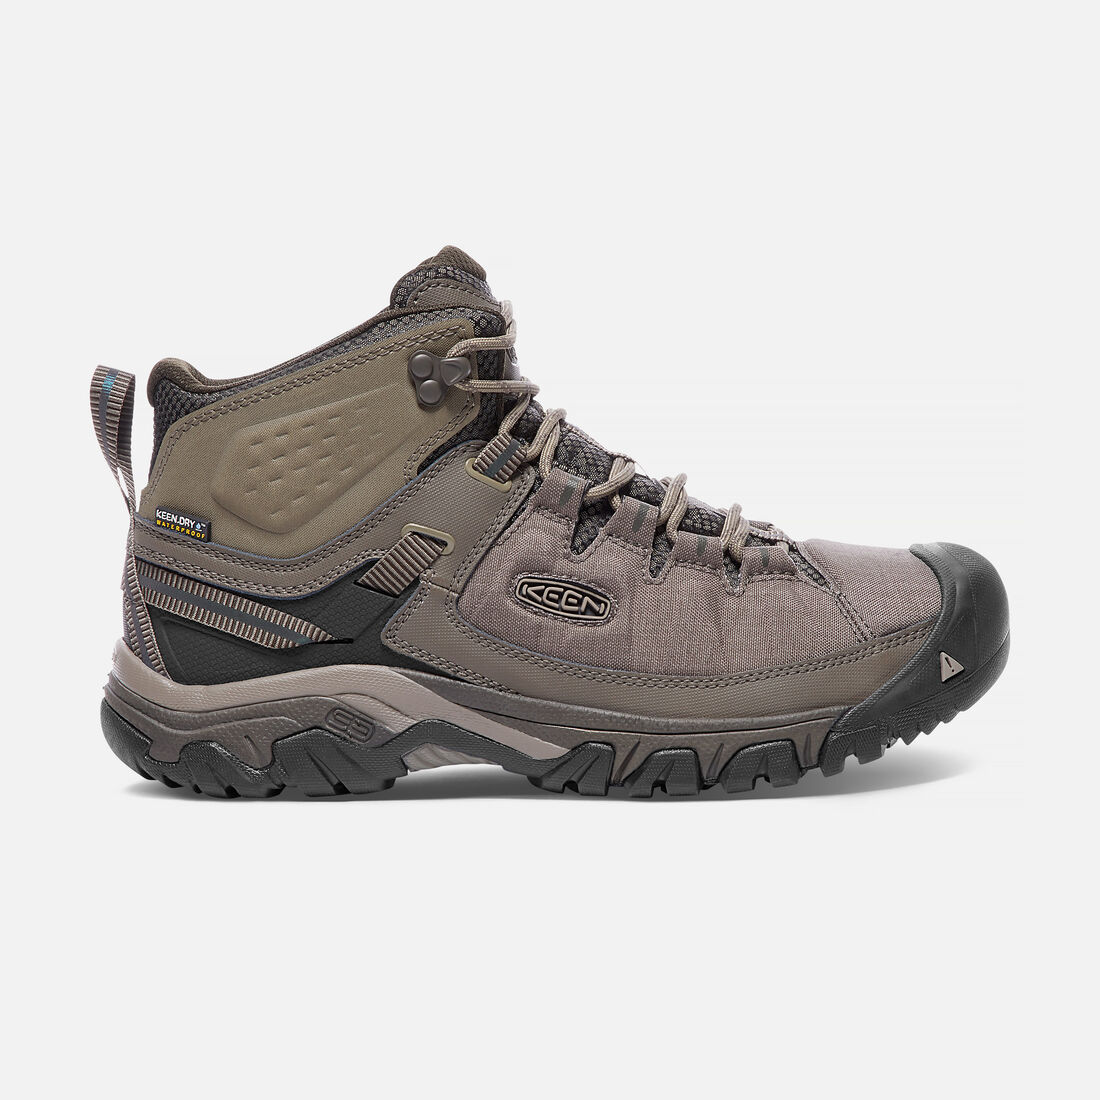 Men's TARGHEE EXP Waterproof Mid in Bungee Cord/Brindle - large view.